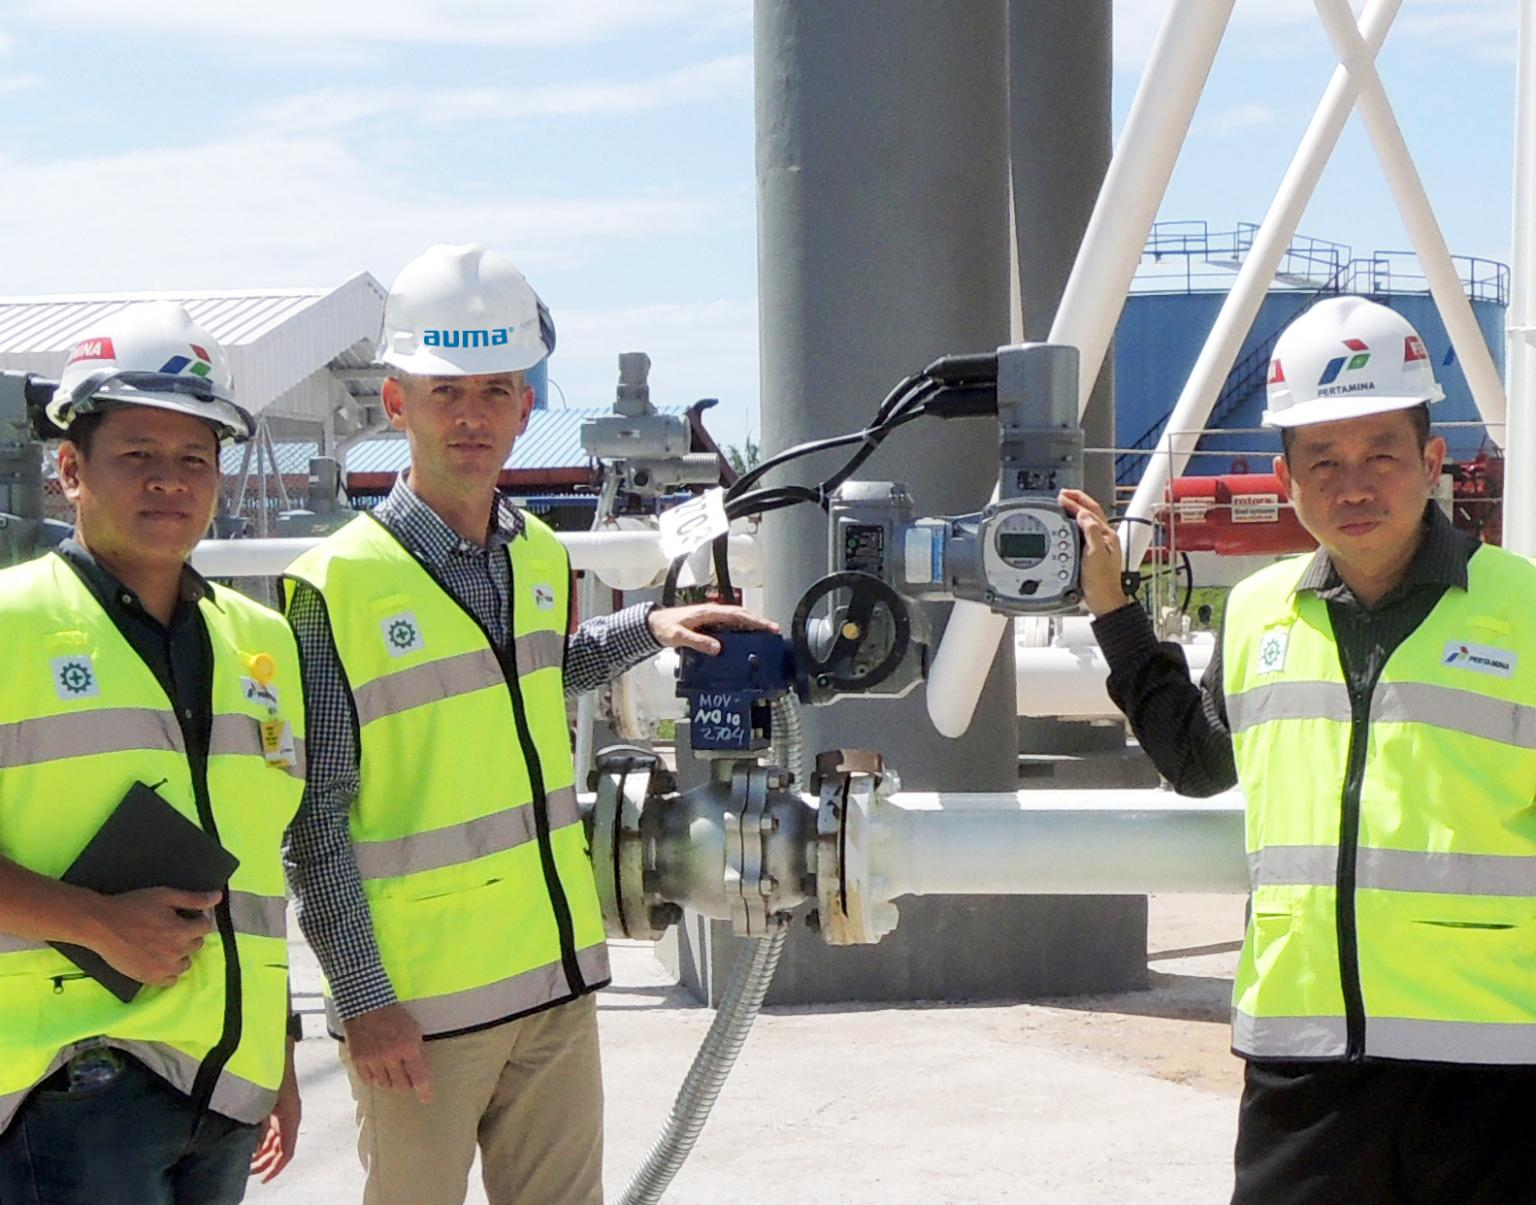 Representatives from Auma and Shell Oman Marketing Company with the SIMA master station following successful factory acceptance tests at AUMA'S production site in Wenden, Germany